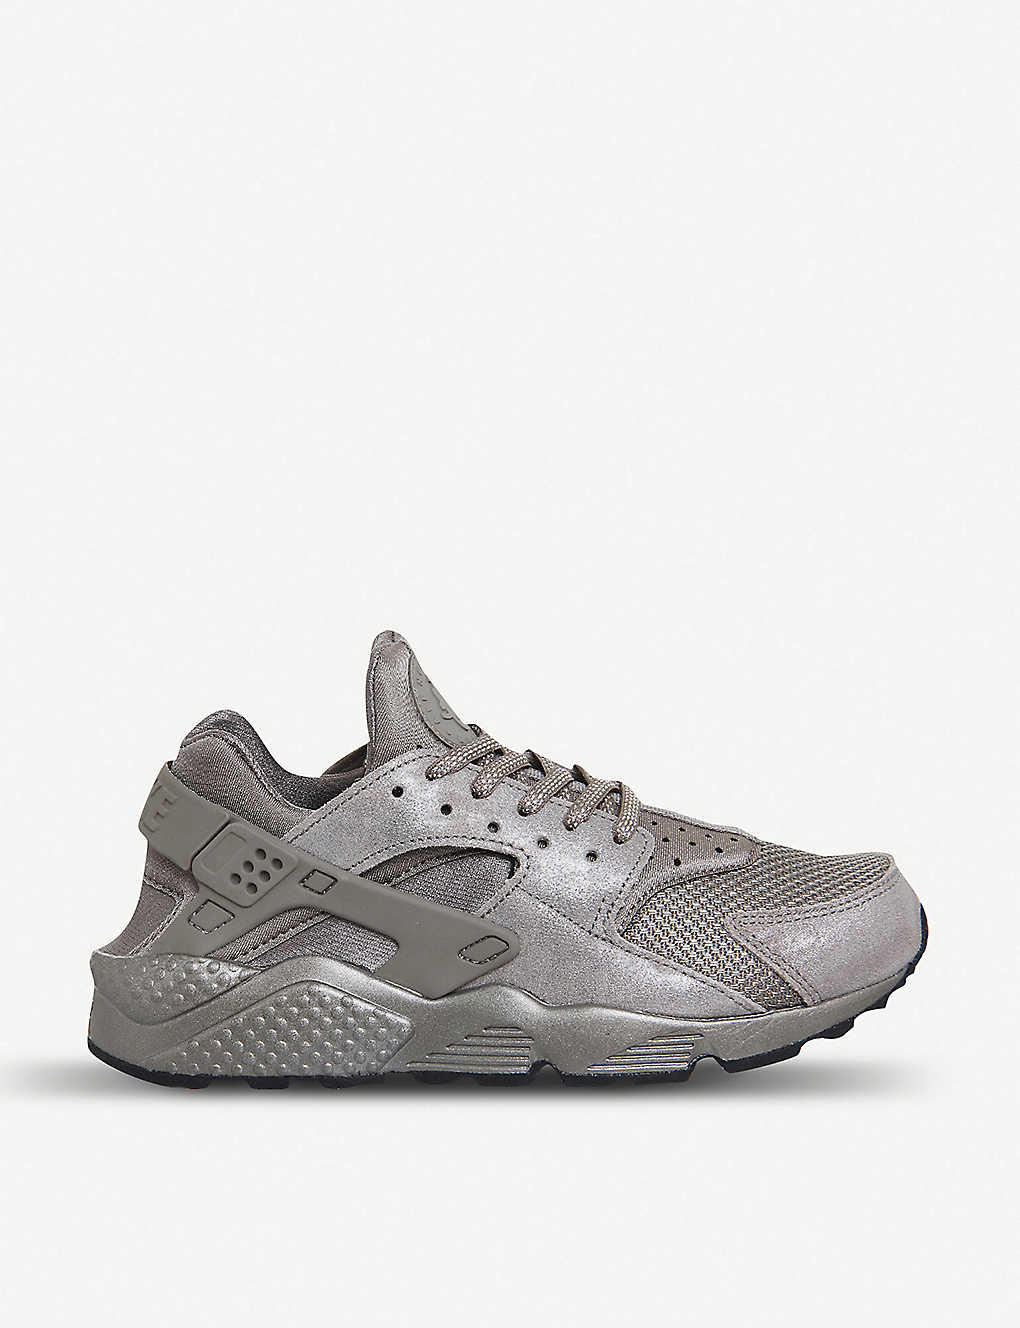 8c6b820f894d NIKE - Air Huarache metallic-suede and neoprene trainers ...